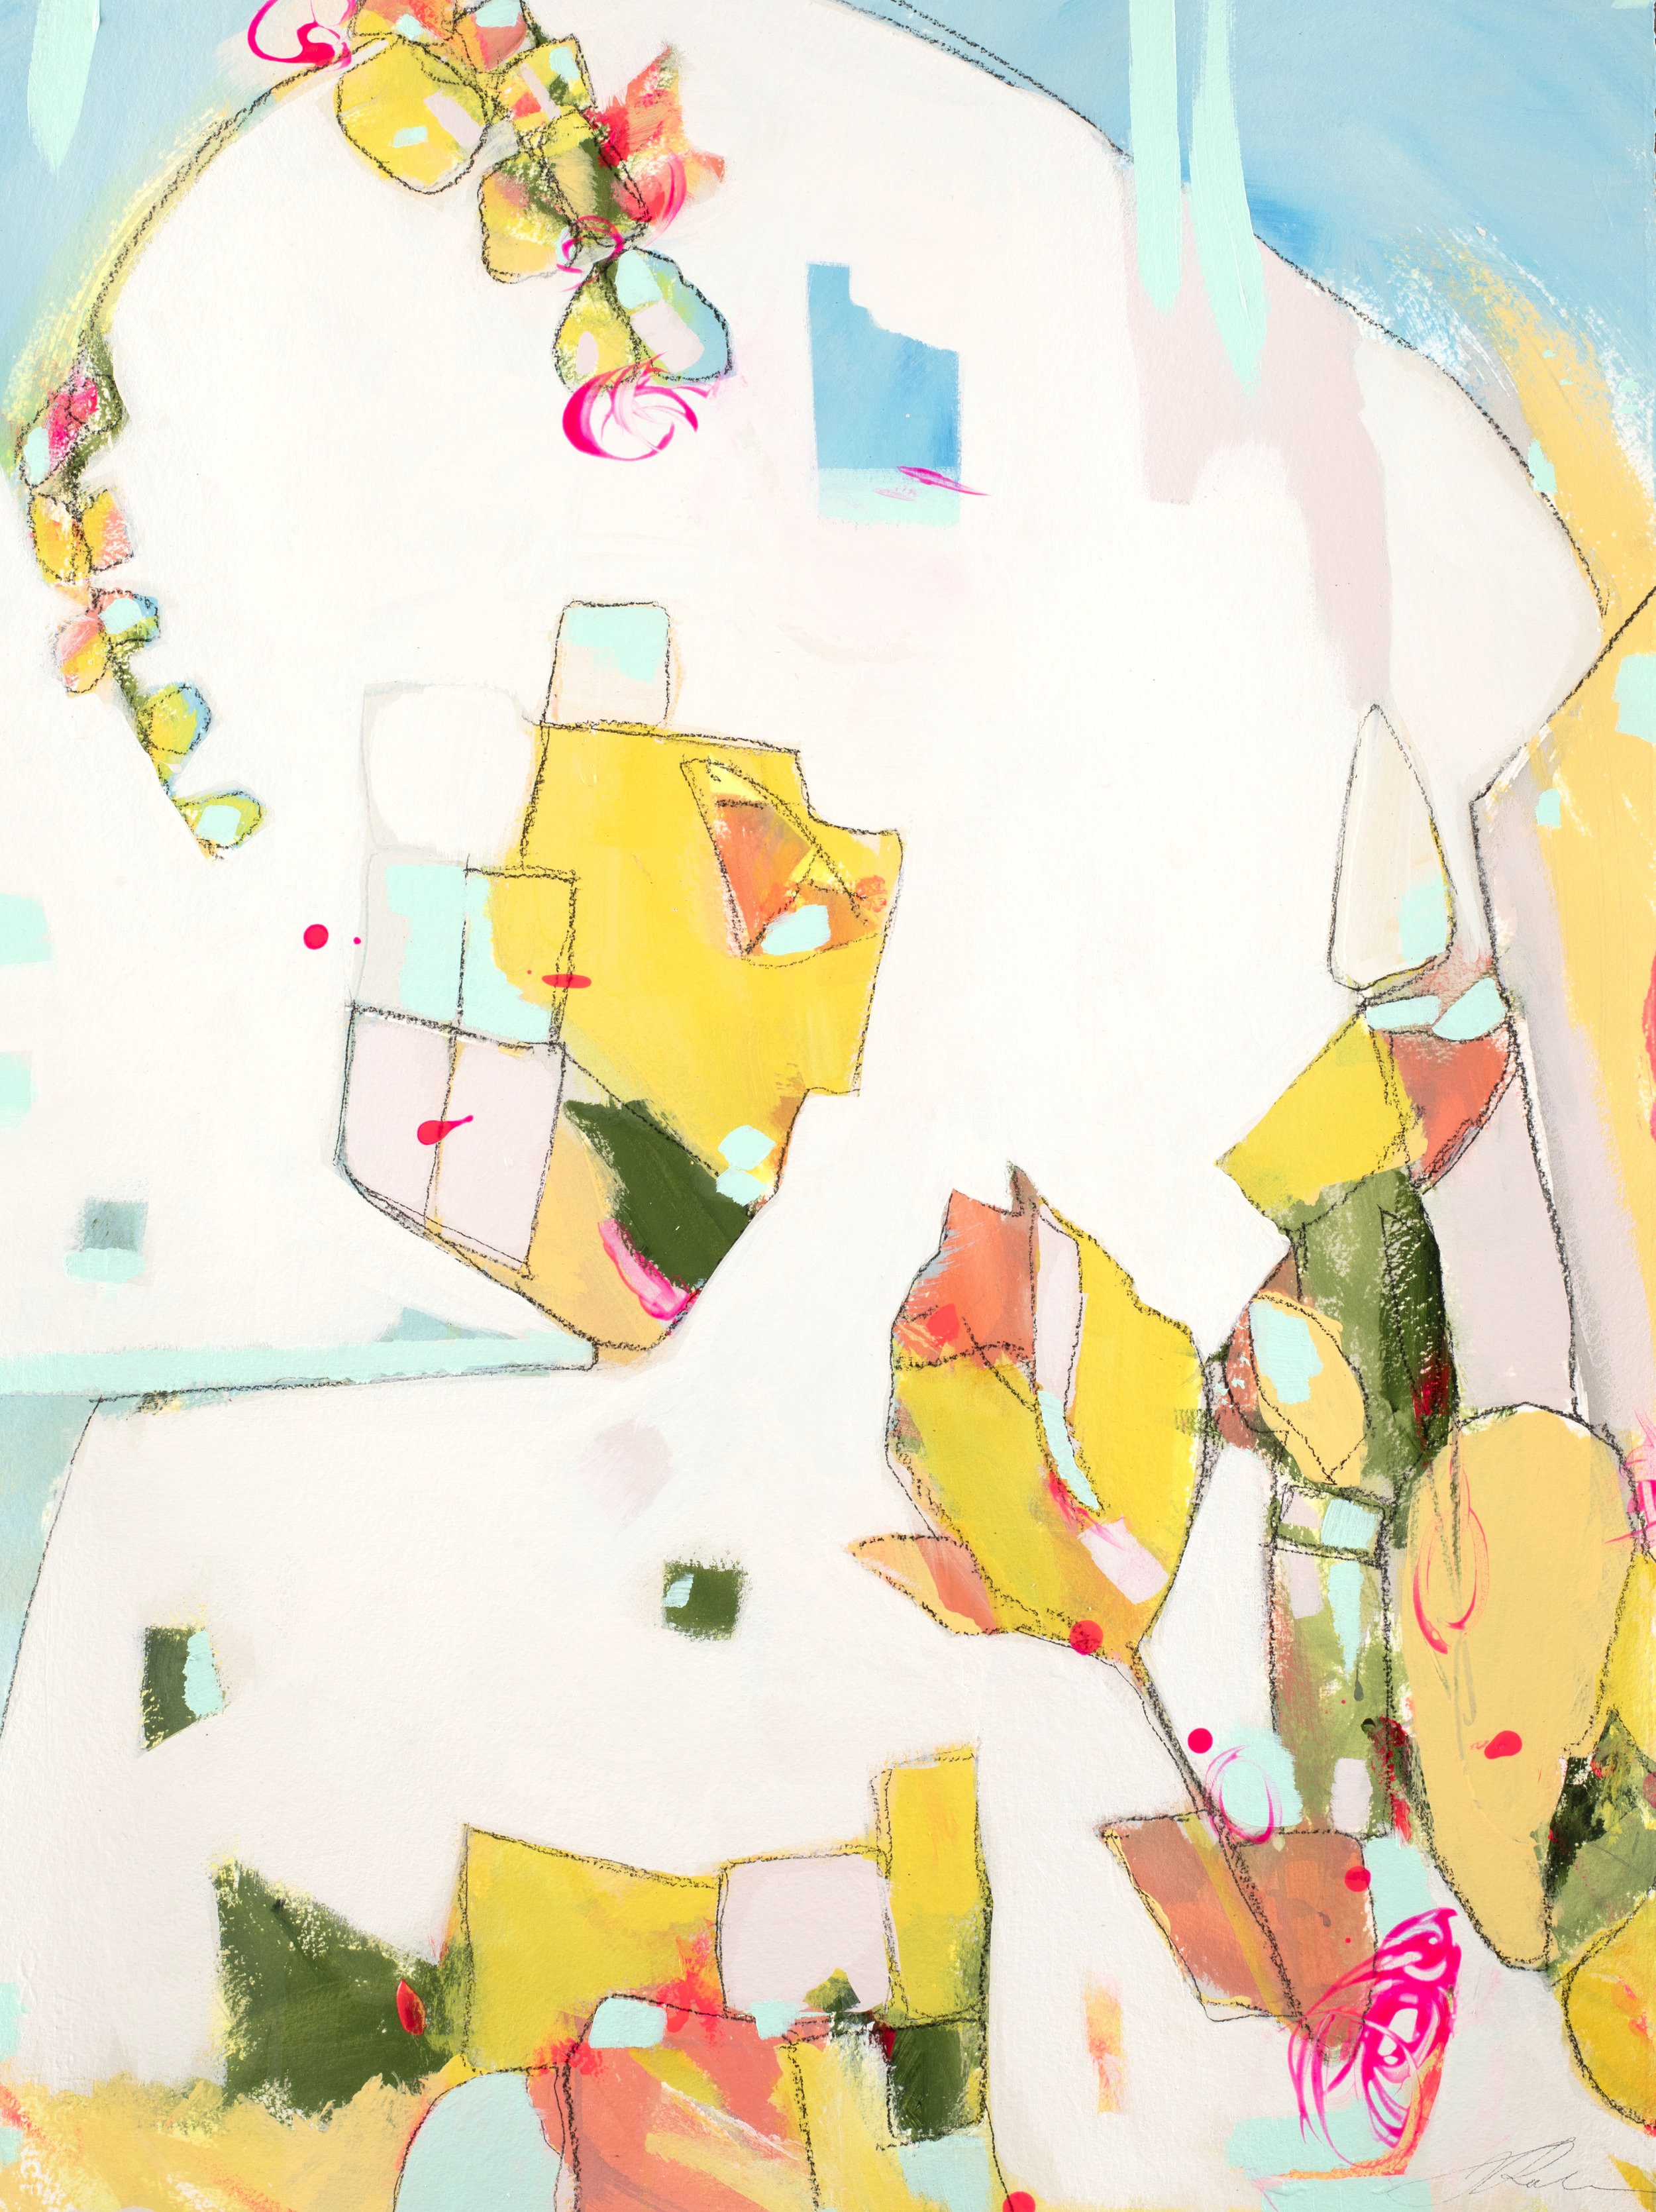 """The Village Where He Lives - 26.5"""" x 34.75""""Mixed media on watercolor paper, framed$1250 